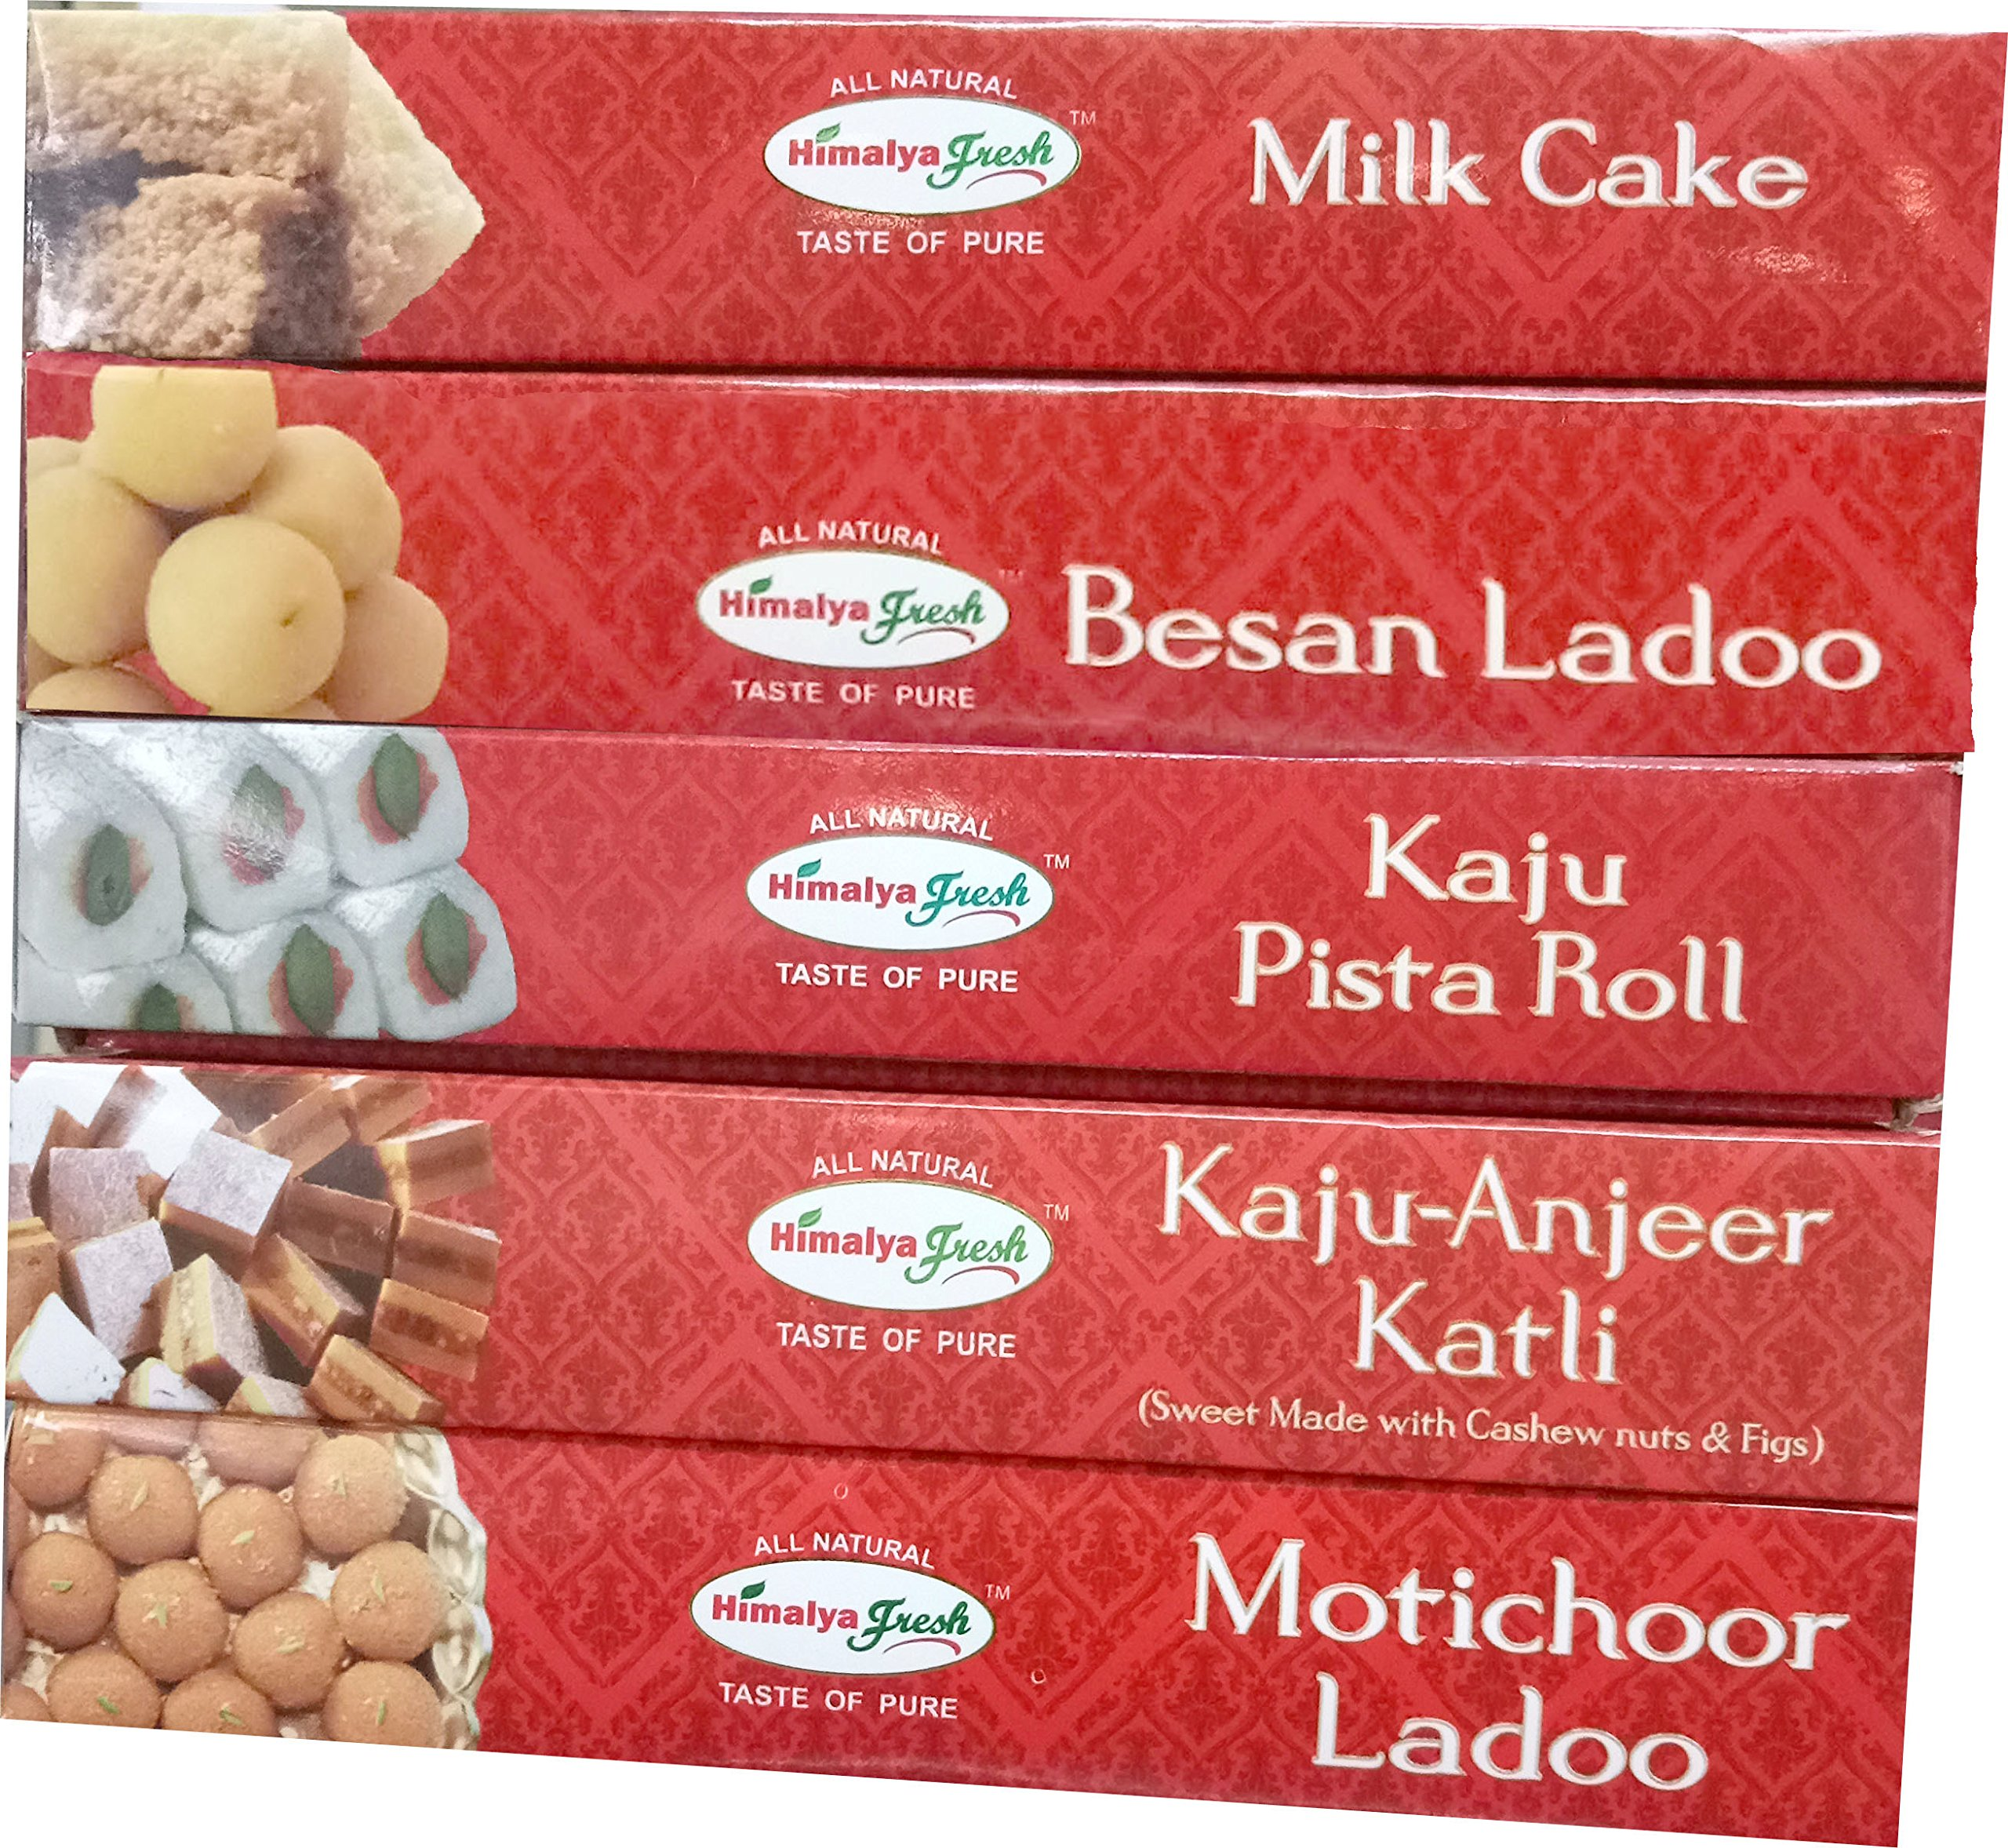 HIMALYA FRESH Authentic Indian Food Value Pack of 5 (1 Box Kesar peda, 12 oz - 1 Box Milk Cake, 14 oz - 1 Box Kaju Anjeer Katli, 12 oz - 1 Box Besan Ladoo, 12 oz - 1 Box Motichoor Ladoo, 12 oz) by Himalya Fresh